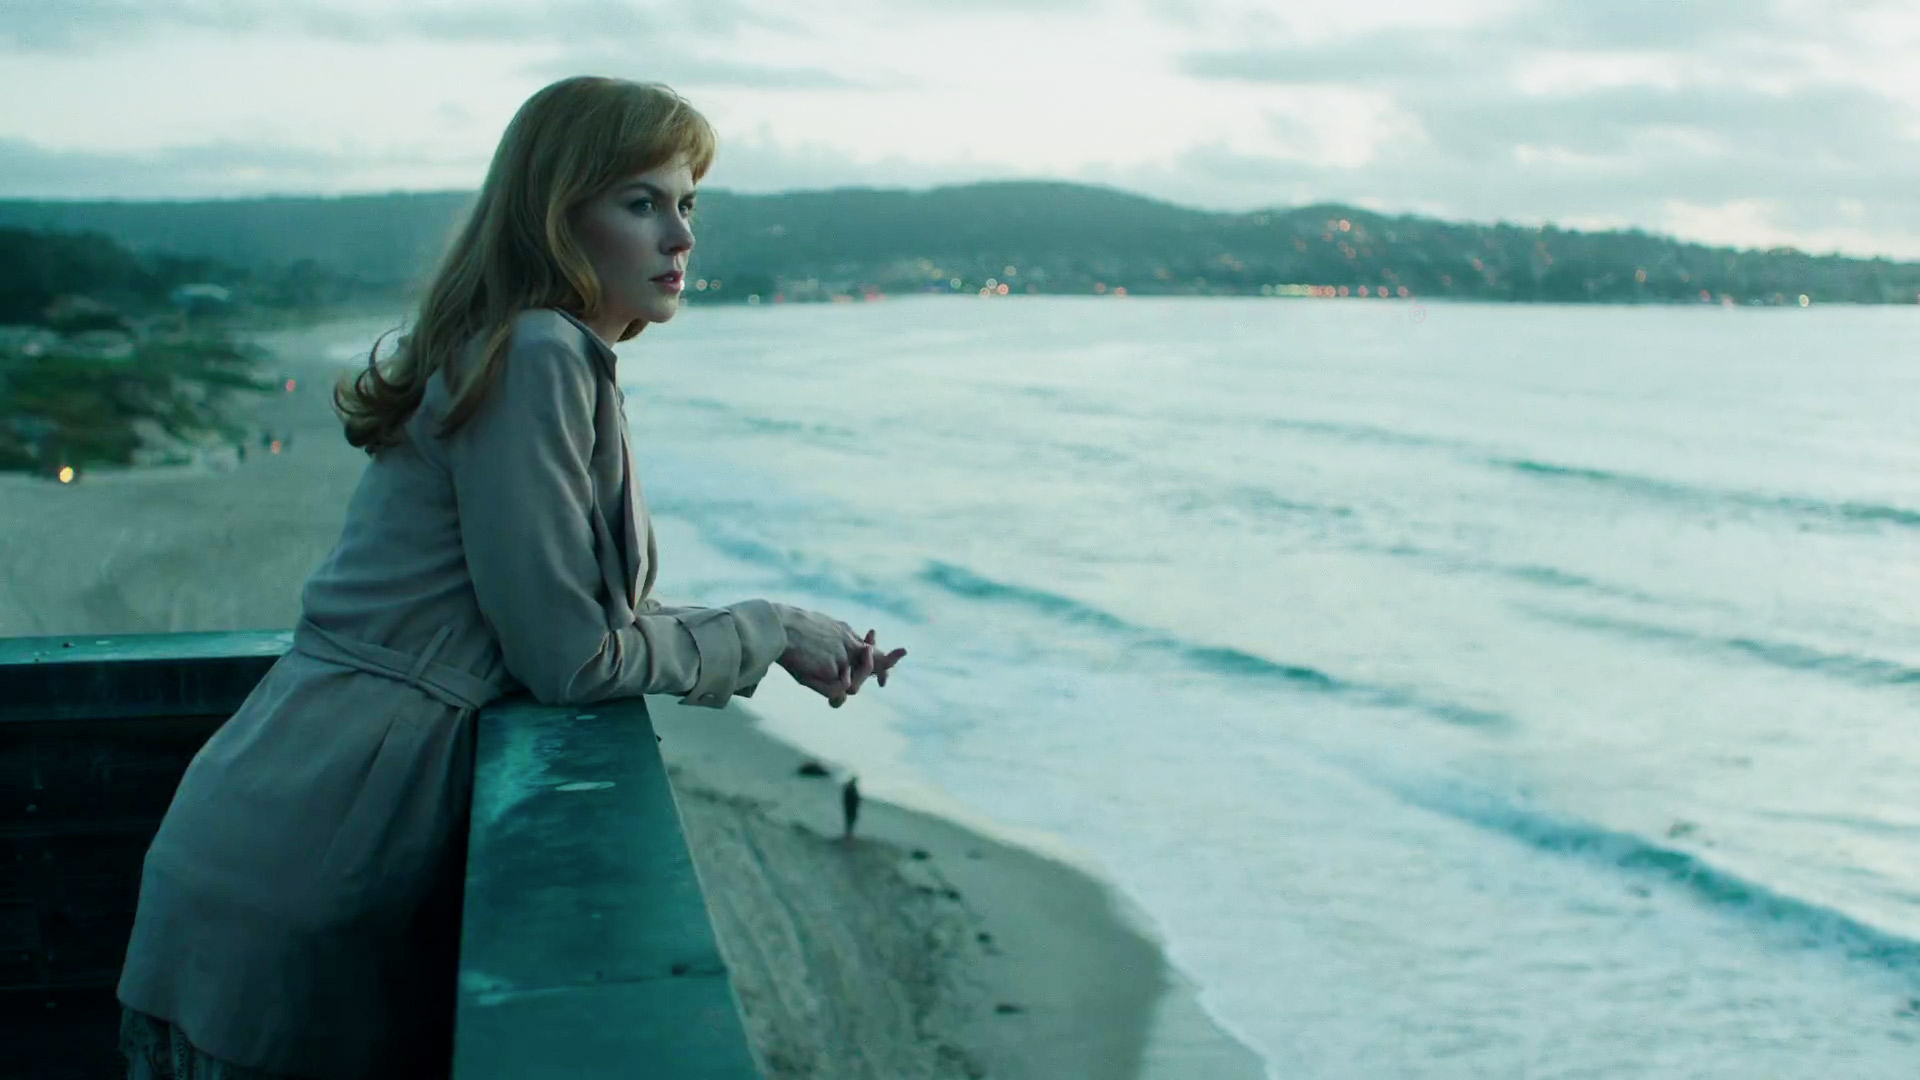 Big Little Lies Celeste mirando al mar